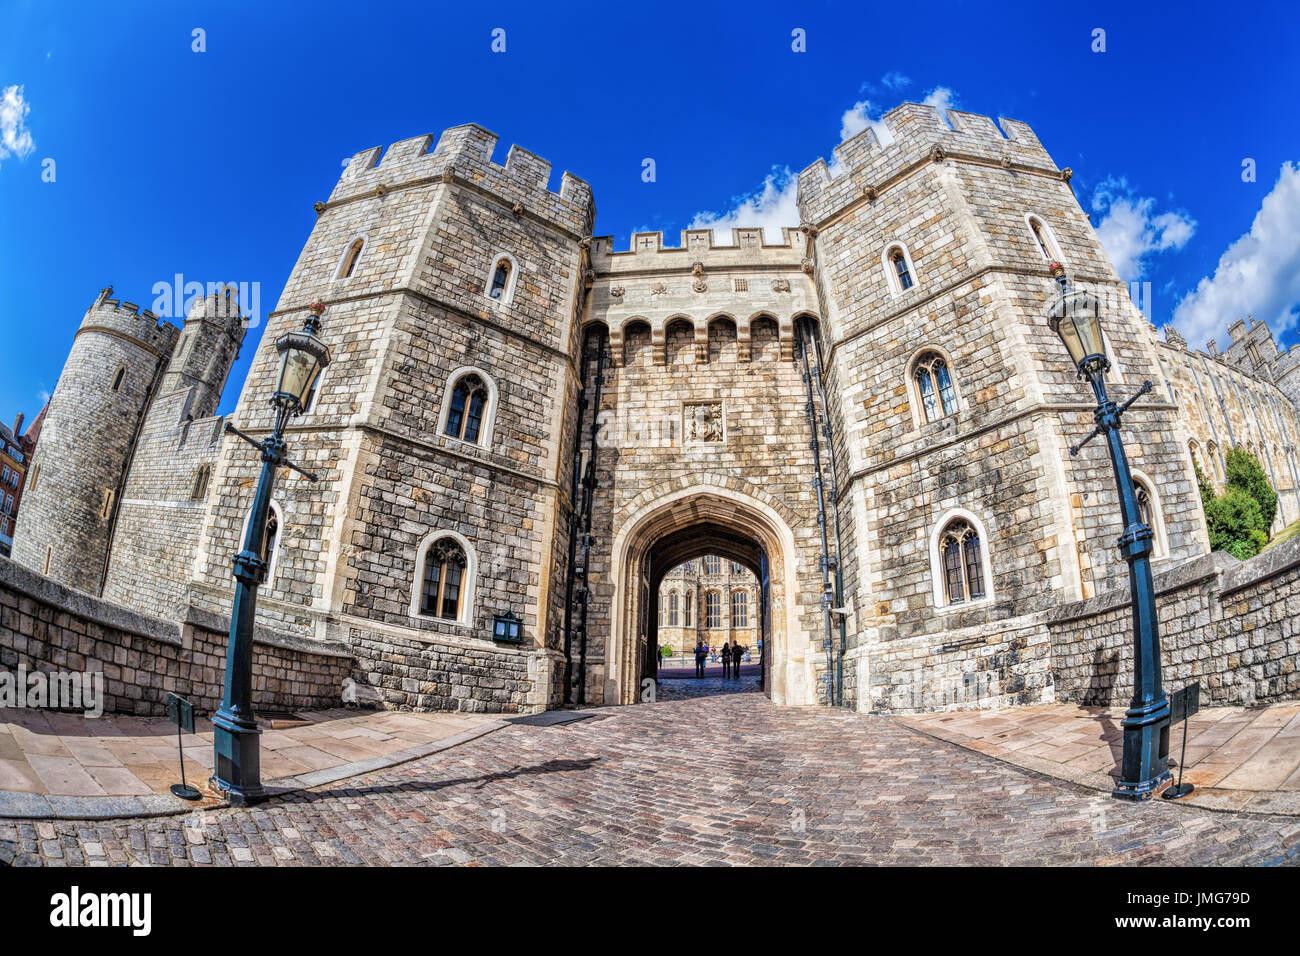 Windsor castle with gate near London, United Kingdom - Stock Image